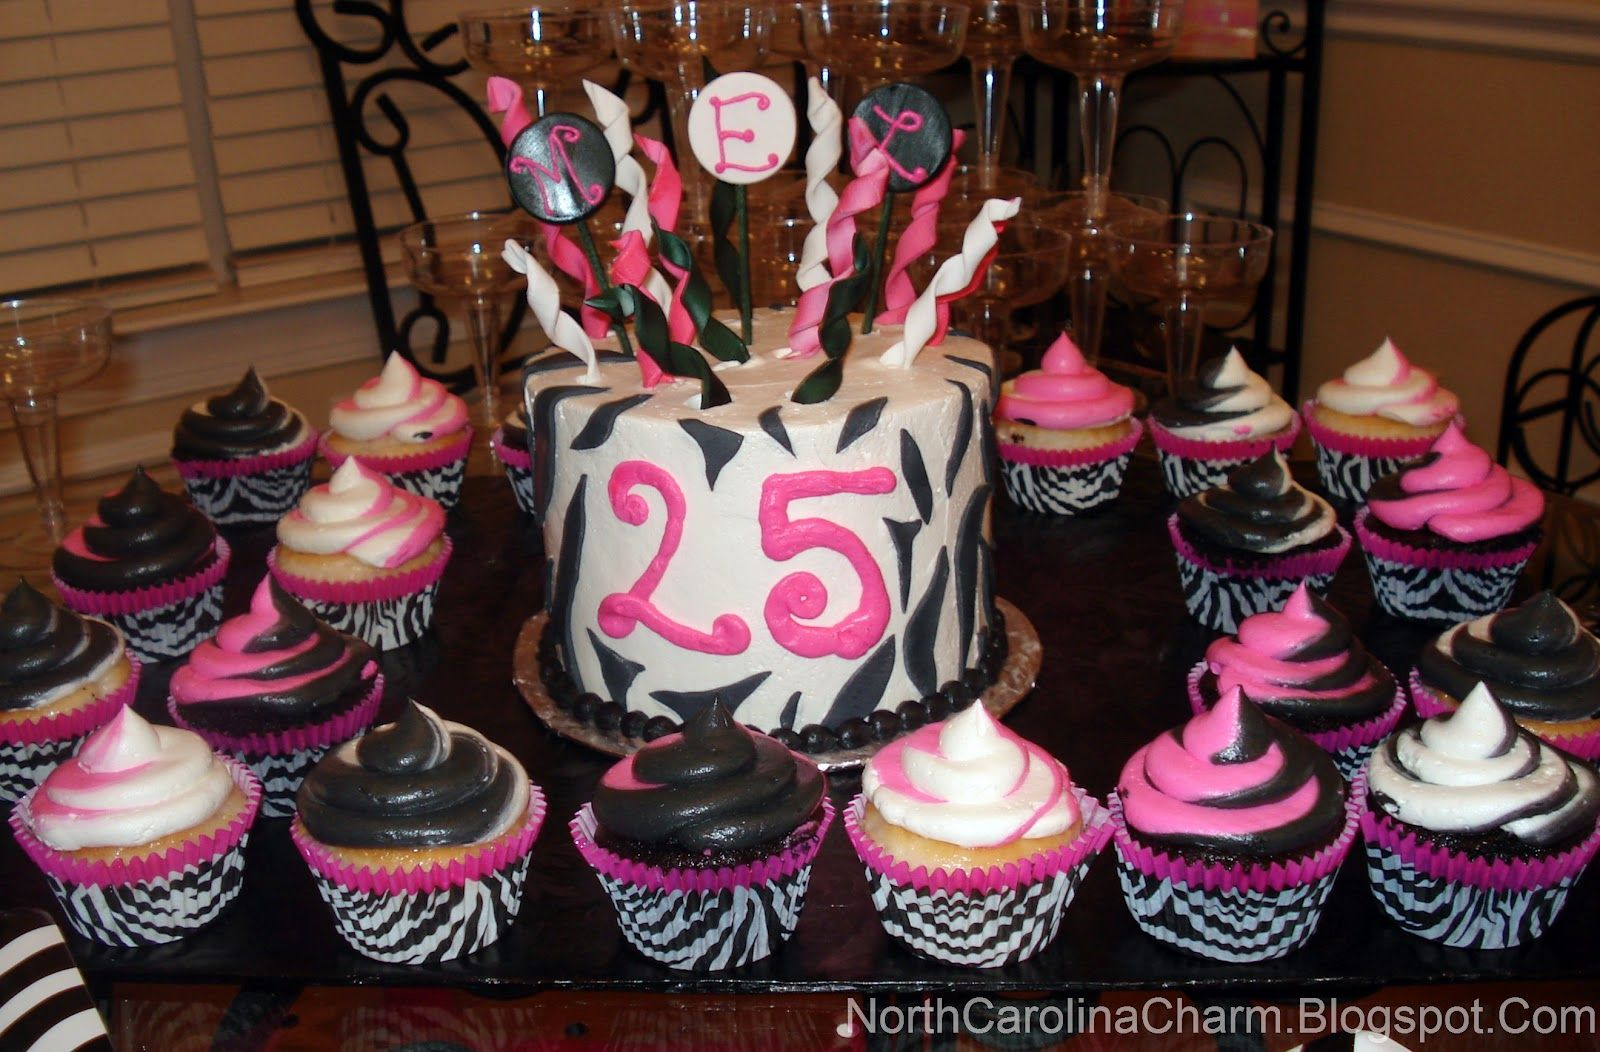 Carolina charm mel 39 s surprise 25th birthday party the for 25th birthday decoration ideas